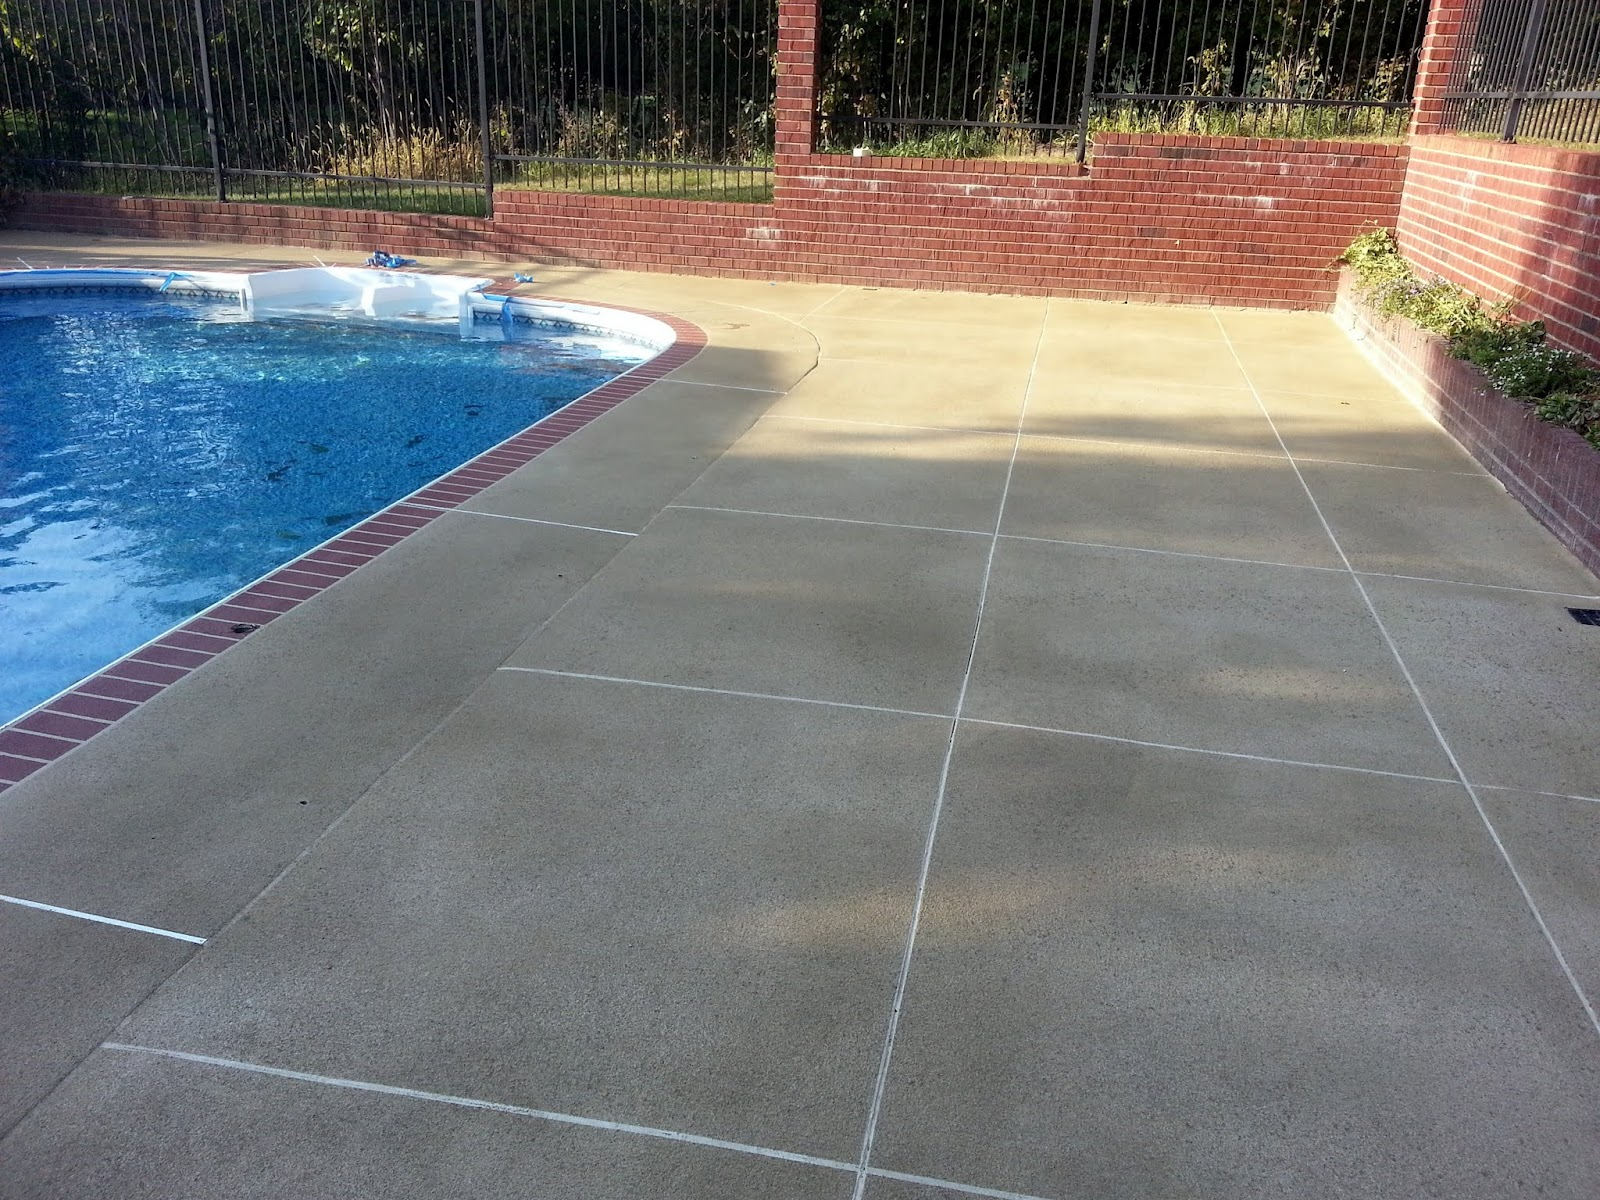 Concrete Pool Deck Finishes Waterproof Deck Systems Archives  California Deck Company Orange